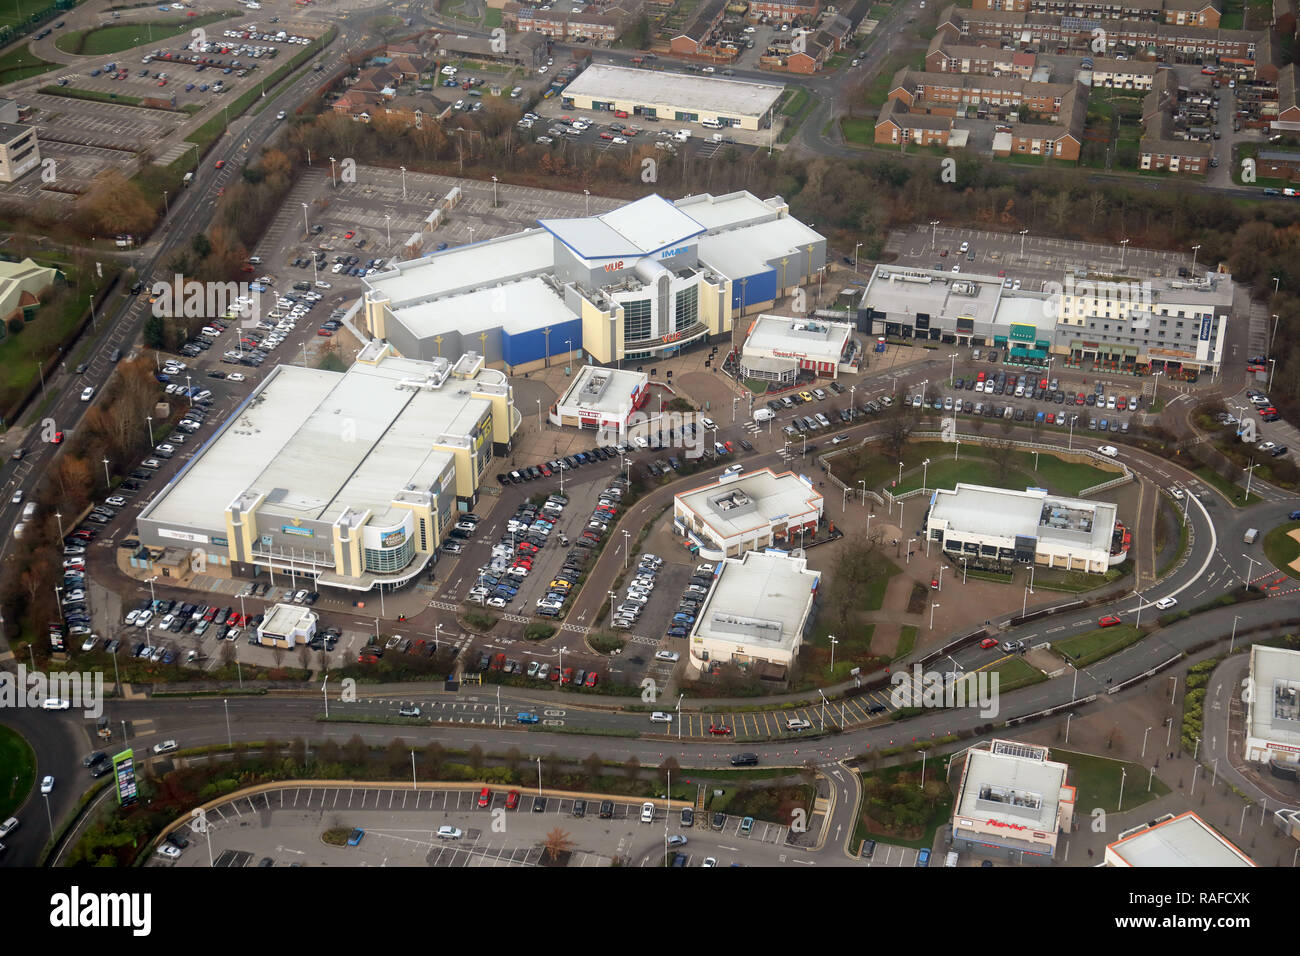 aerial view of the Cheshire Oaks Outlet Village, Ellesmere Port, UK - Stock Image